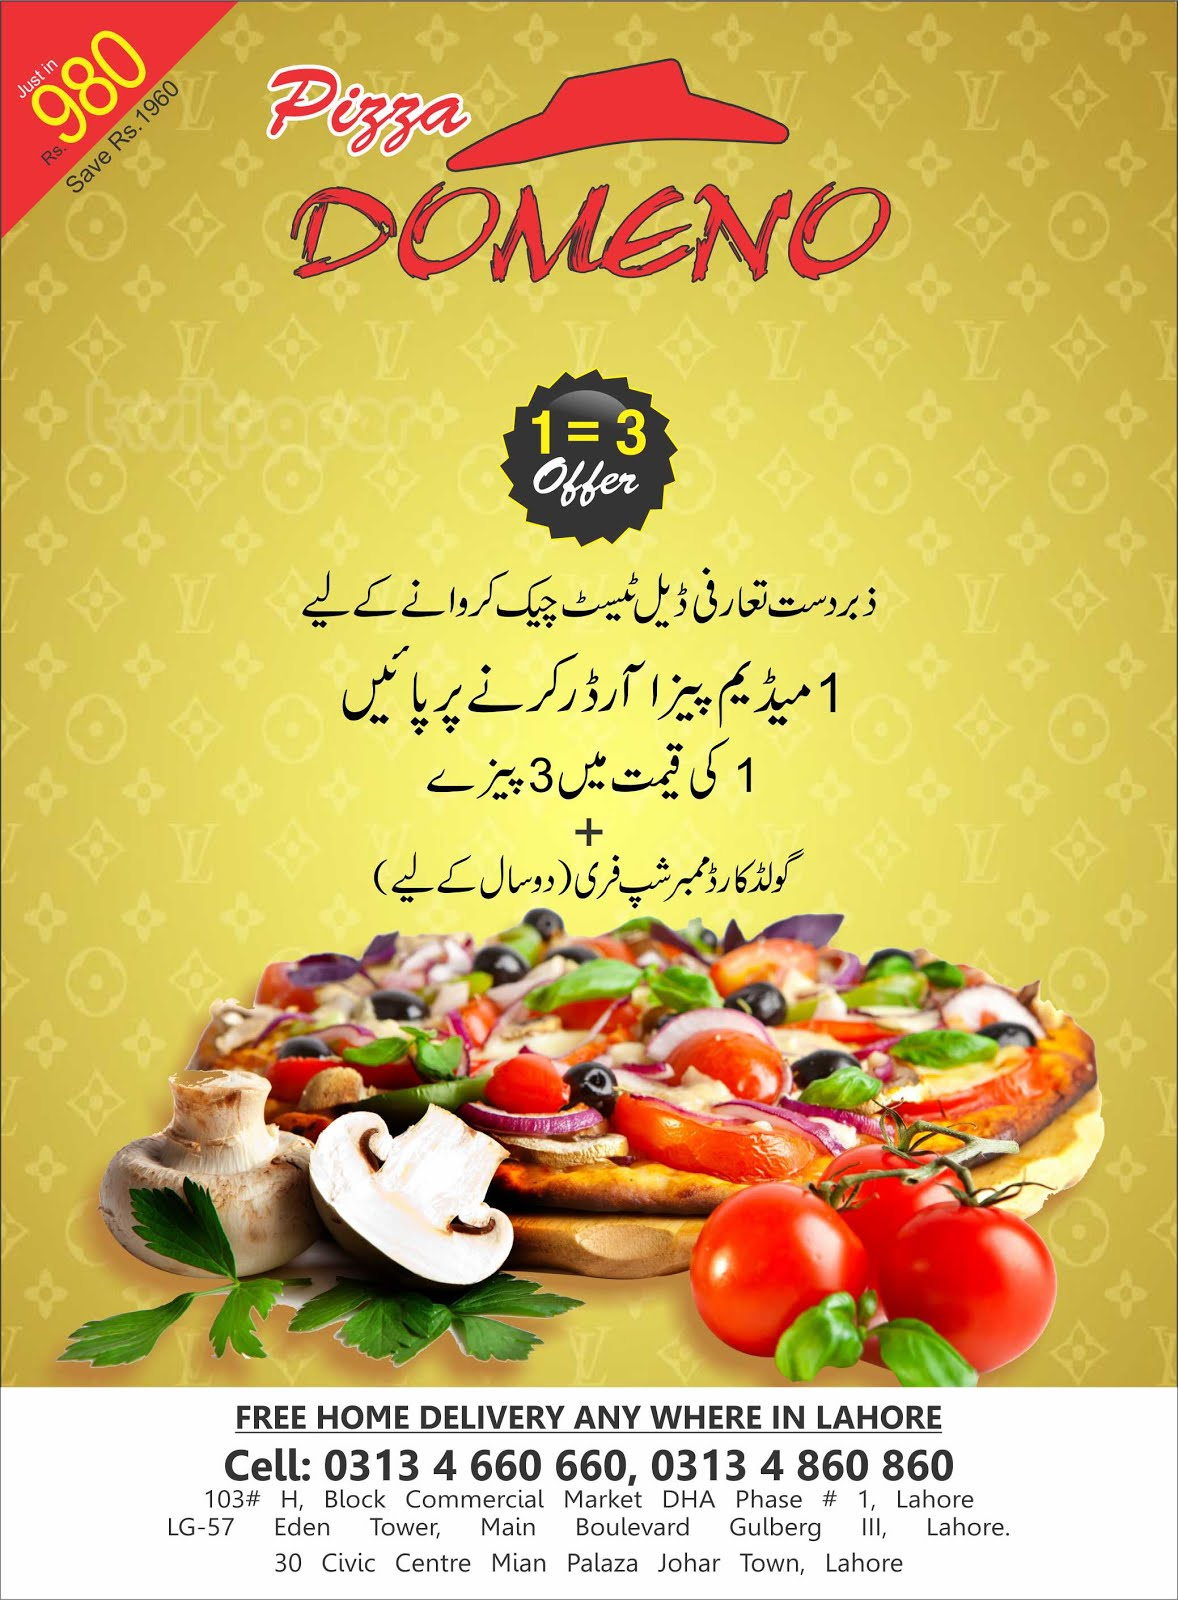 Pizza Restaurants in Lahore , Restaurants in Lahore free home delivery Pizza Burger